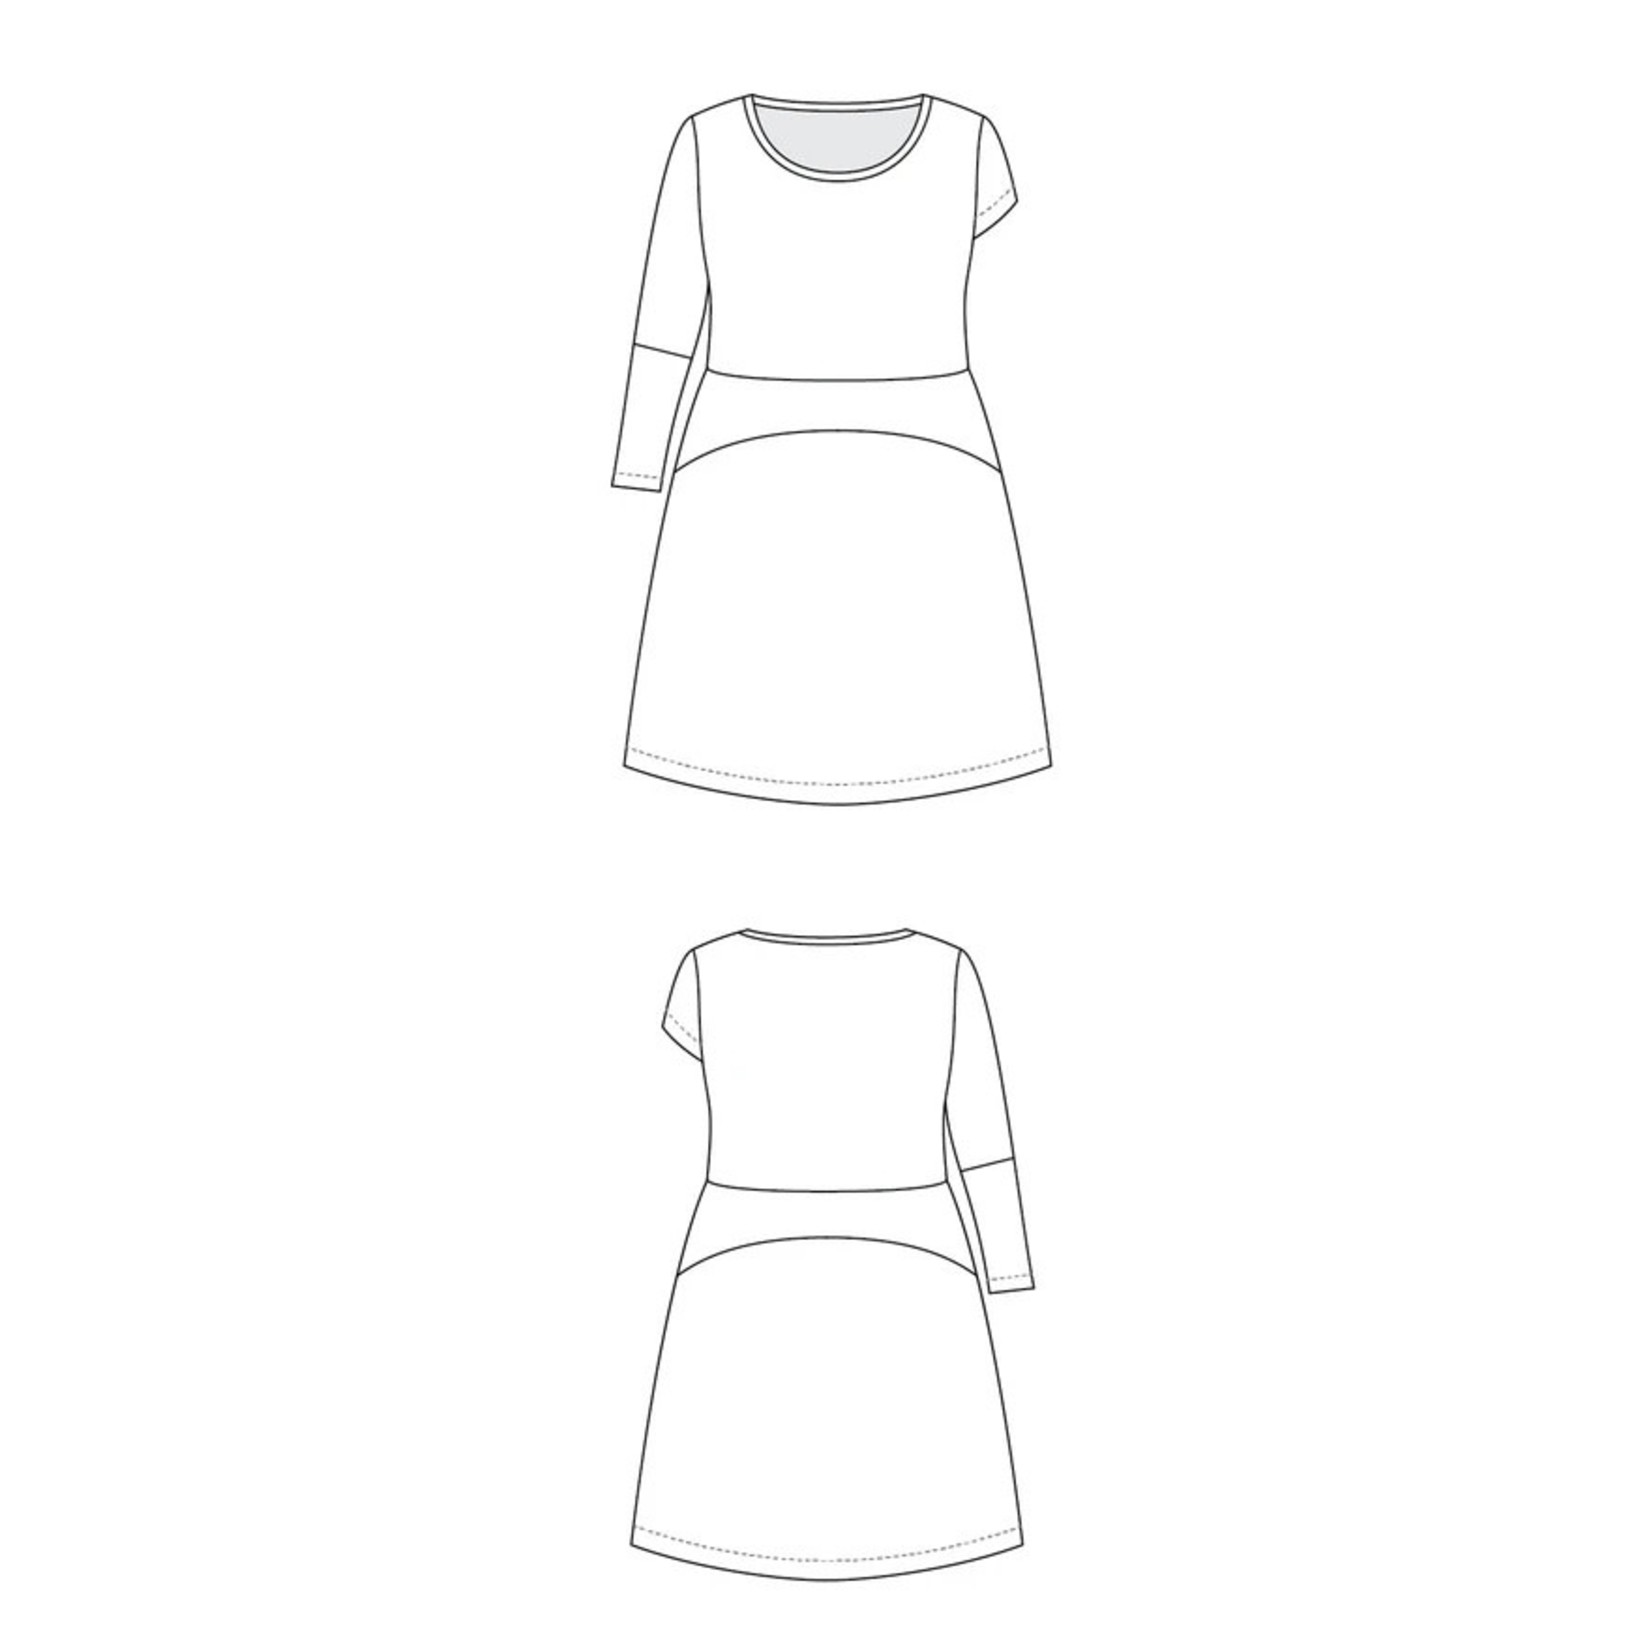 Cashmerette Washington Dress Pattern 12-28 (Cup C-H)